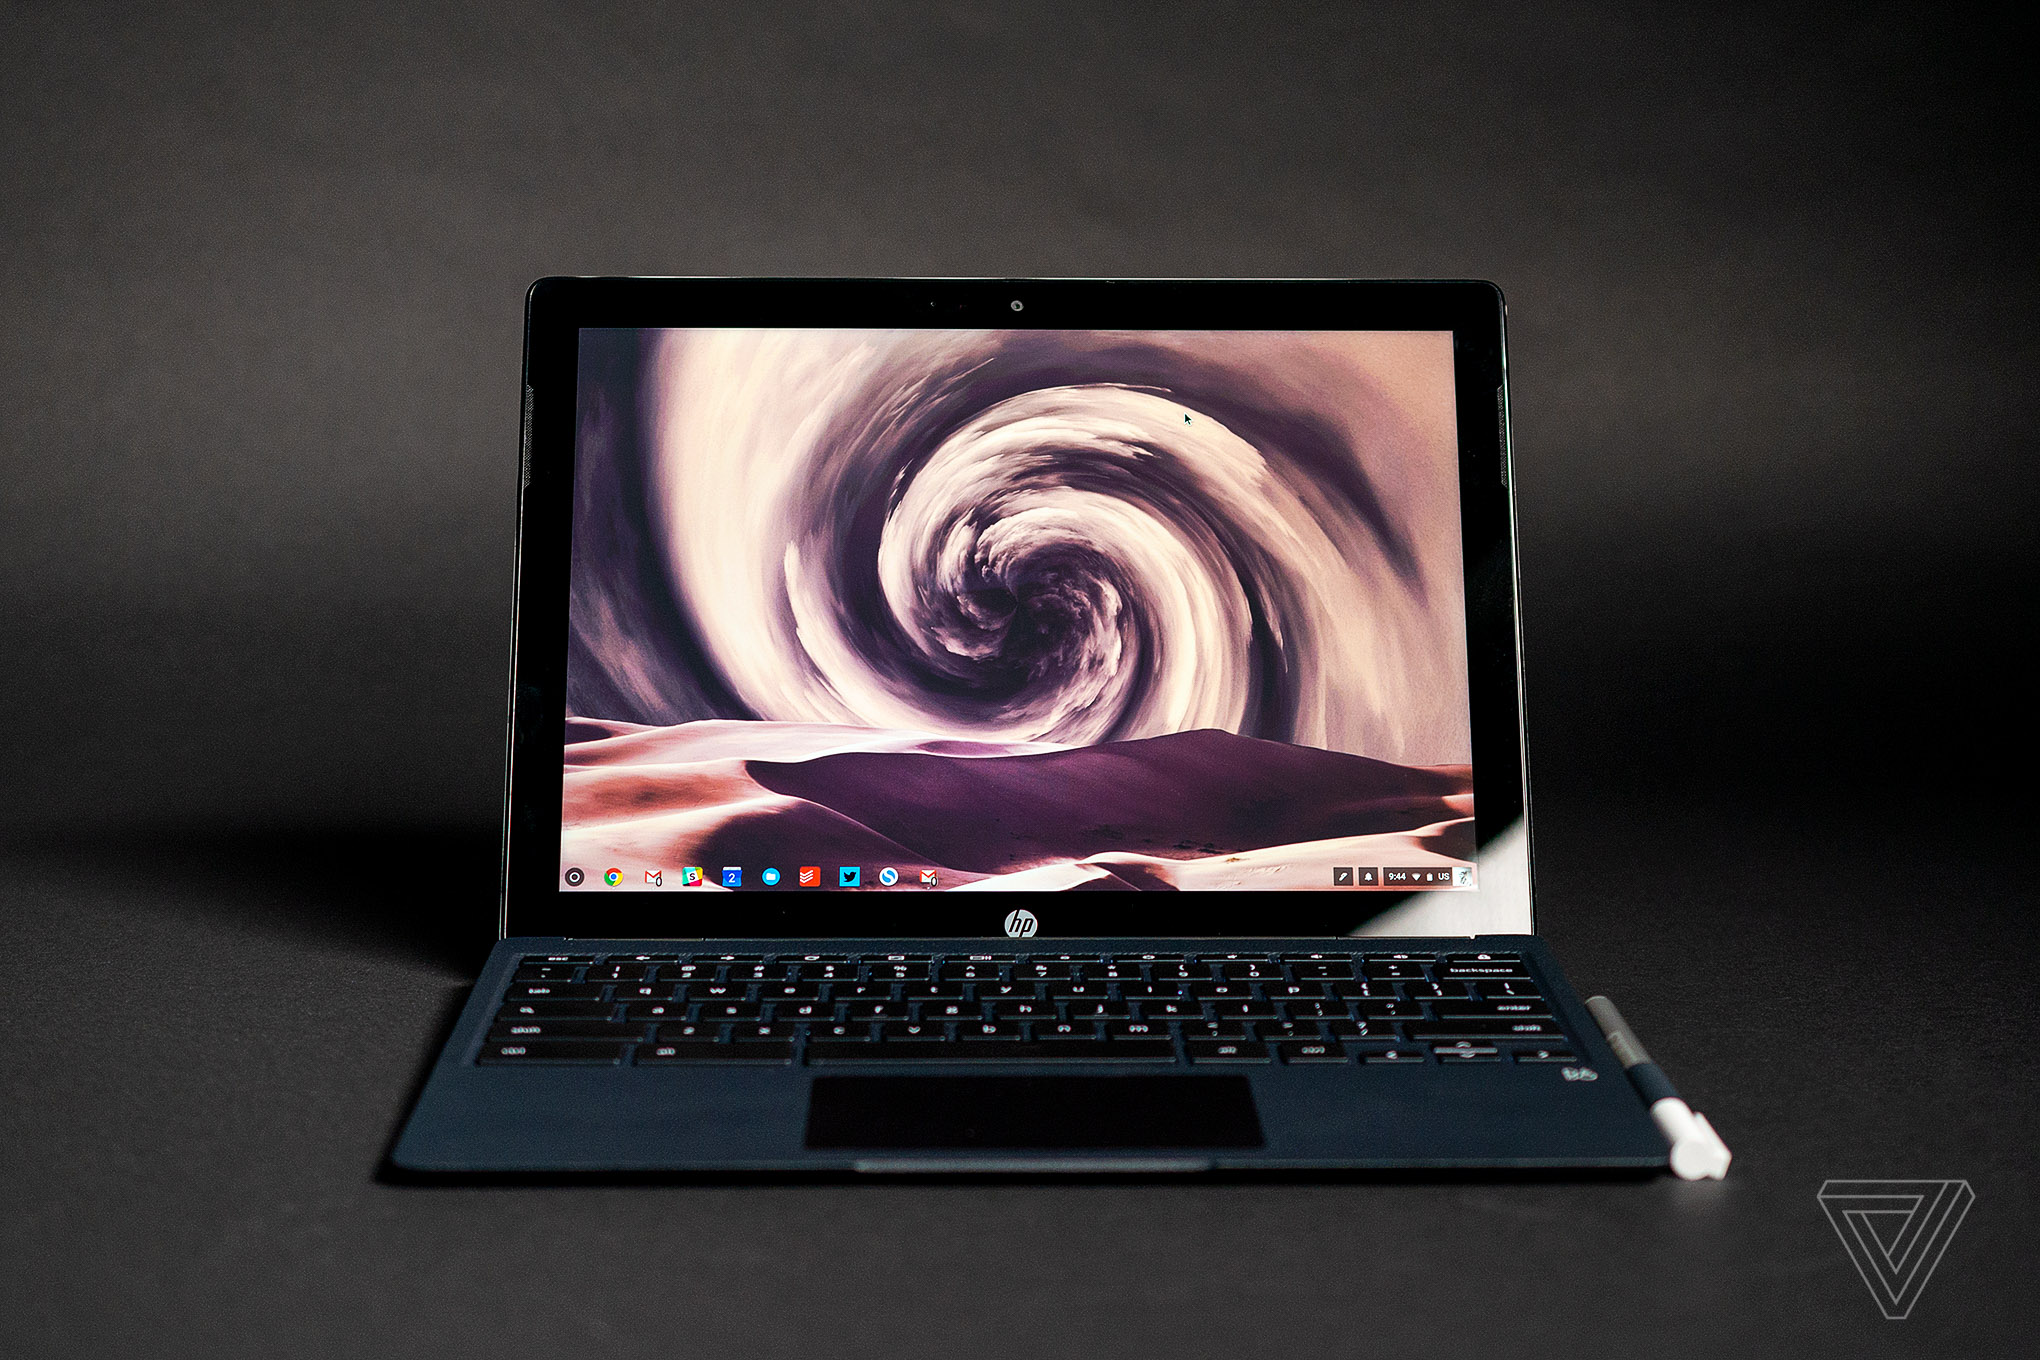 HP Chromebook x2 review: semi-pro - The Verge